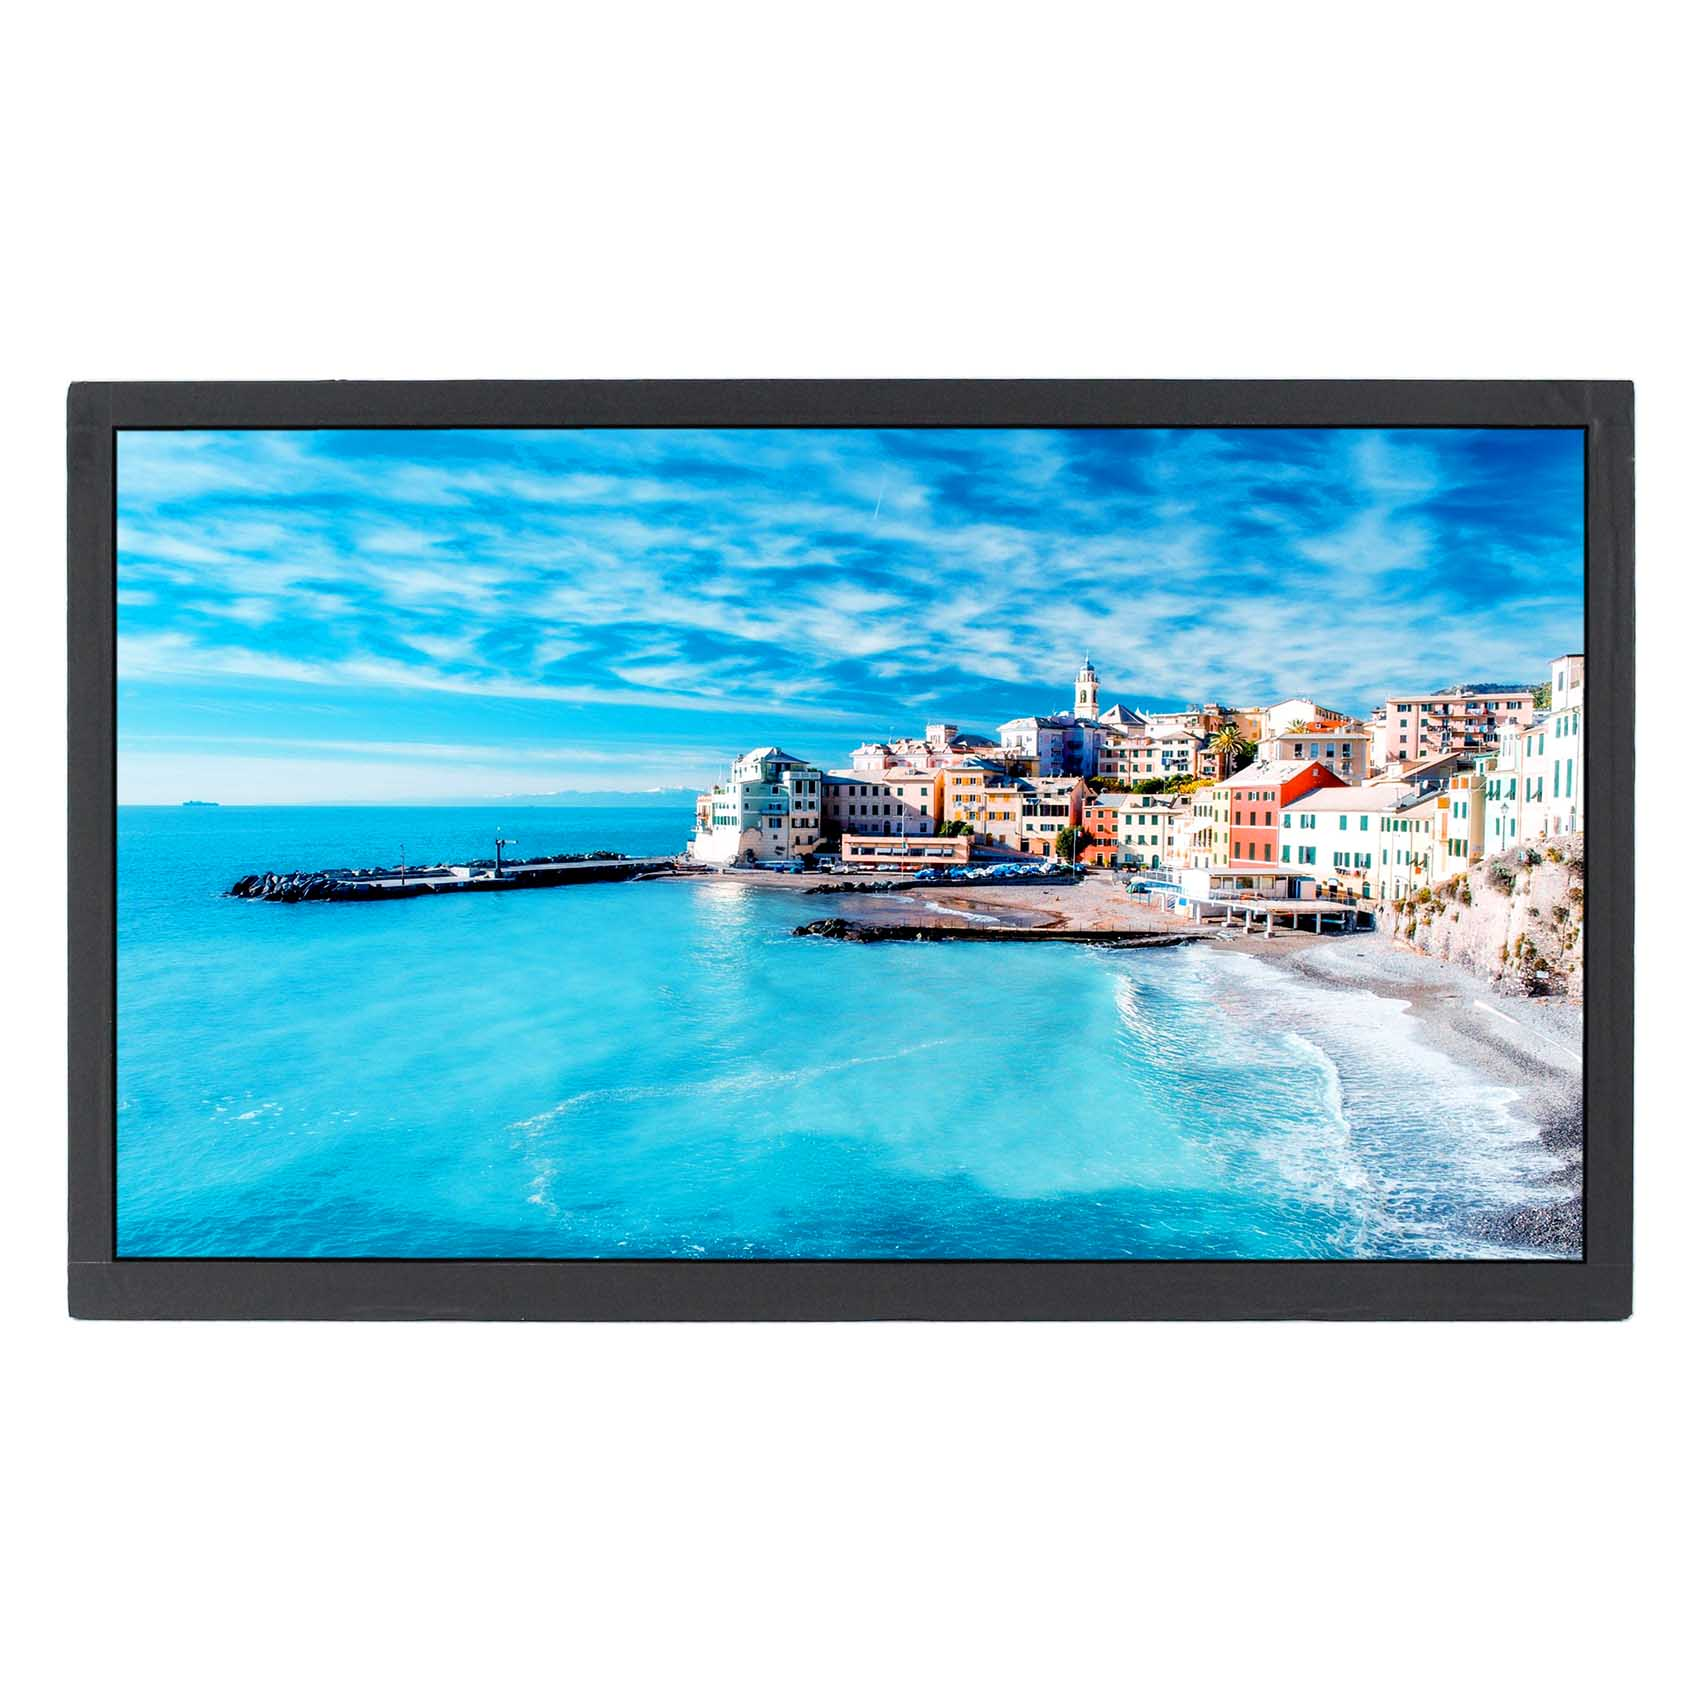 kein Touch Nv133qhm-a51 13,3 Zoll 2560x1440 Ips Lcd Screen Videospiele